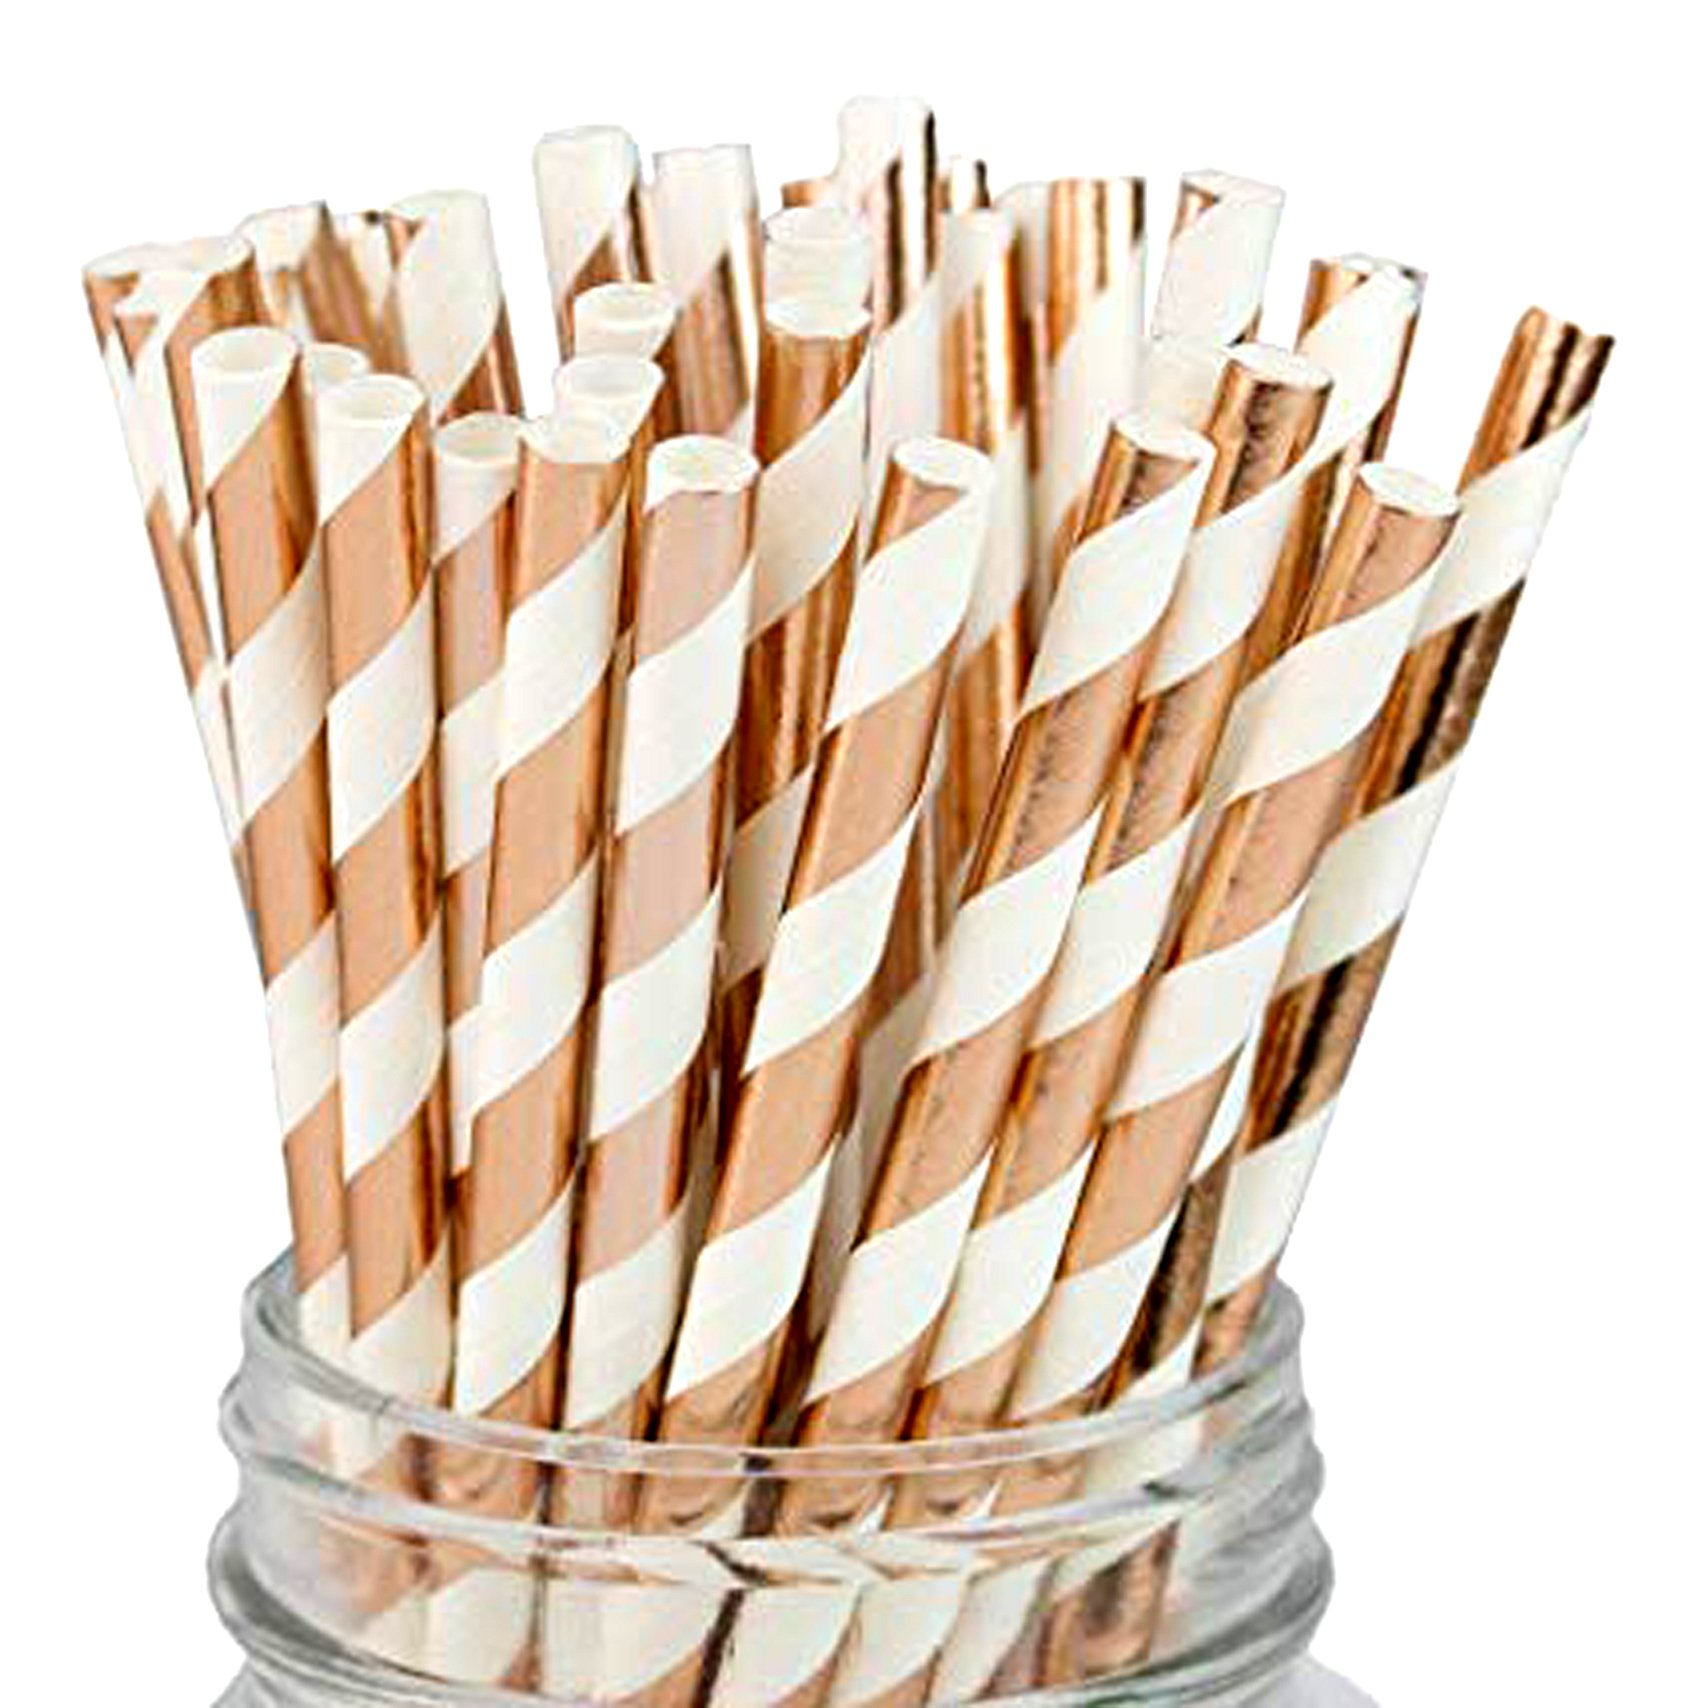 Rose Gold Striped Paper Straws, Disposable Straws for Adult and Kids Party Decorations and Celebrations, Baby Shower, wedding 100 Pcs 7.75 Inches